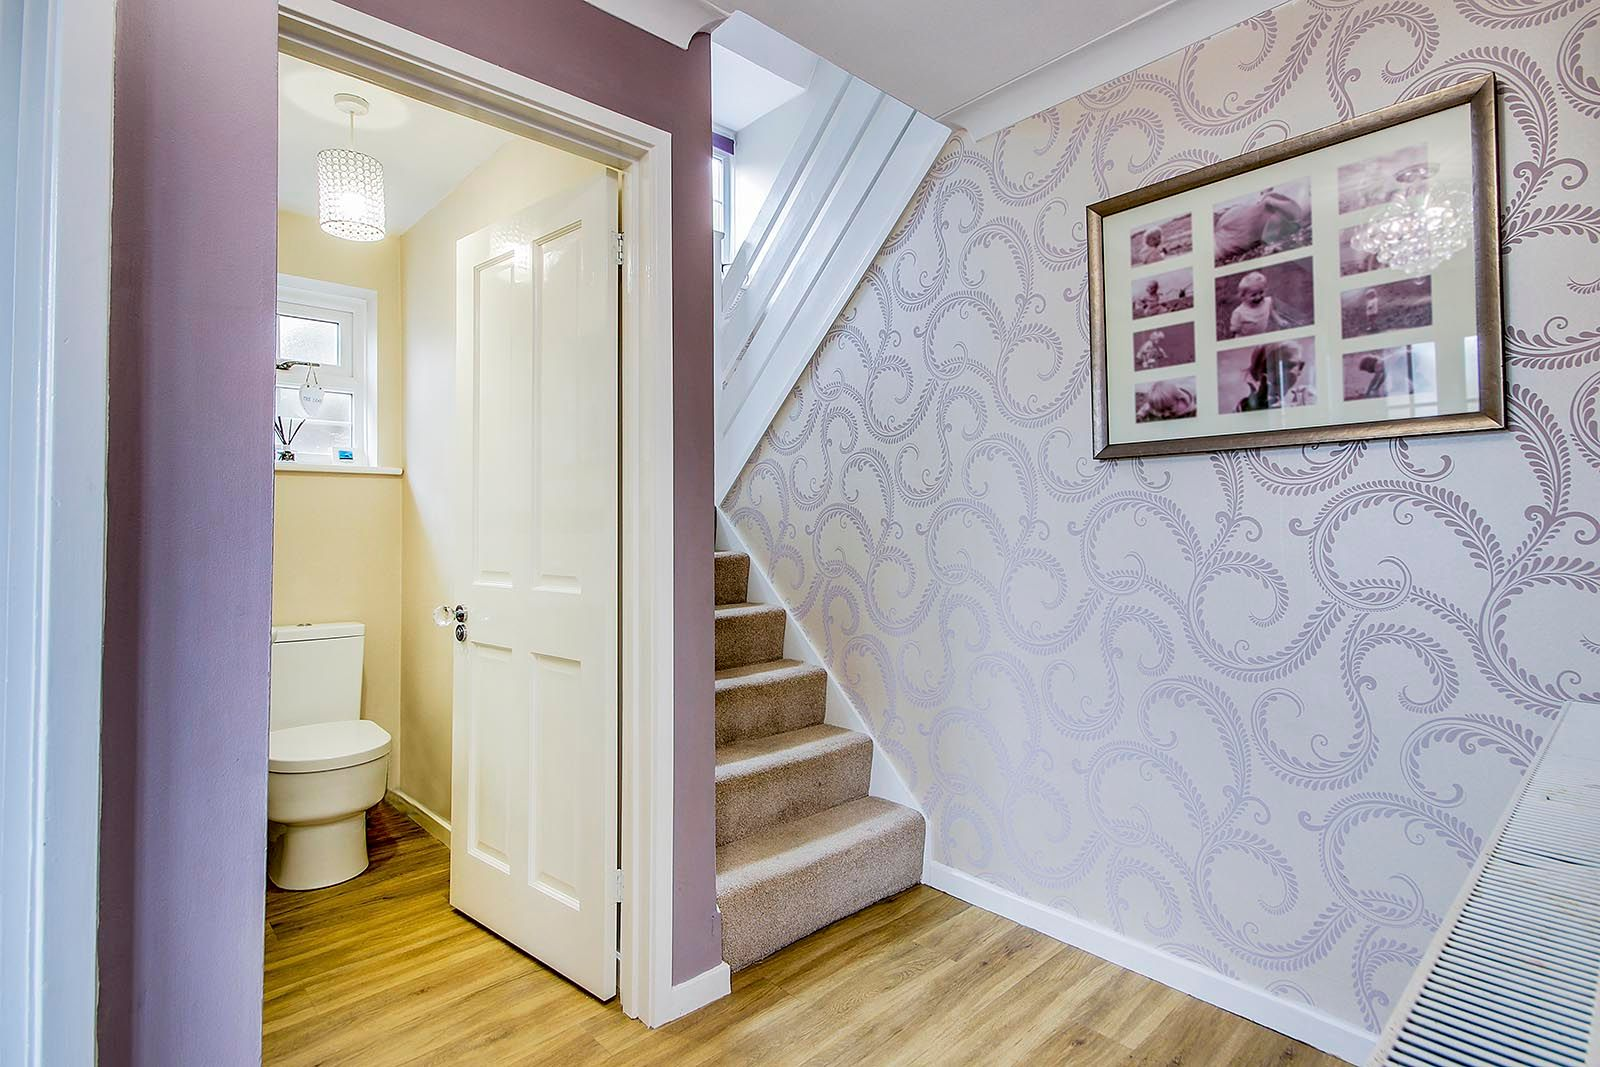 3 bed house for sale in Woodlands Close (COMP AUG 19)  - Property Image 9